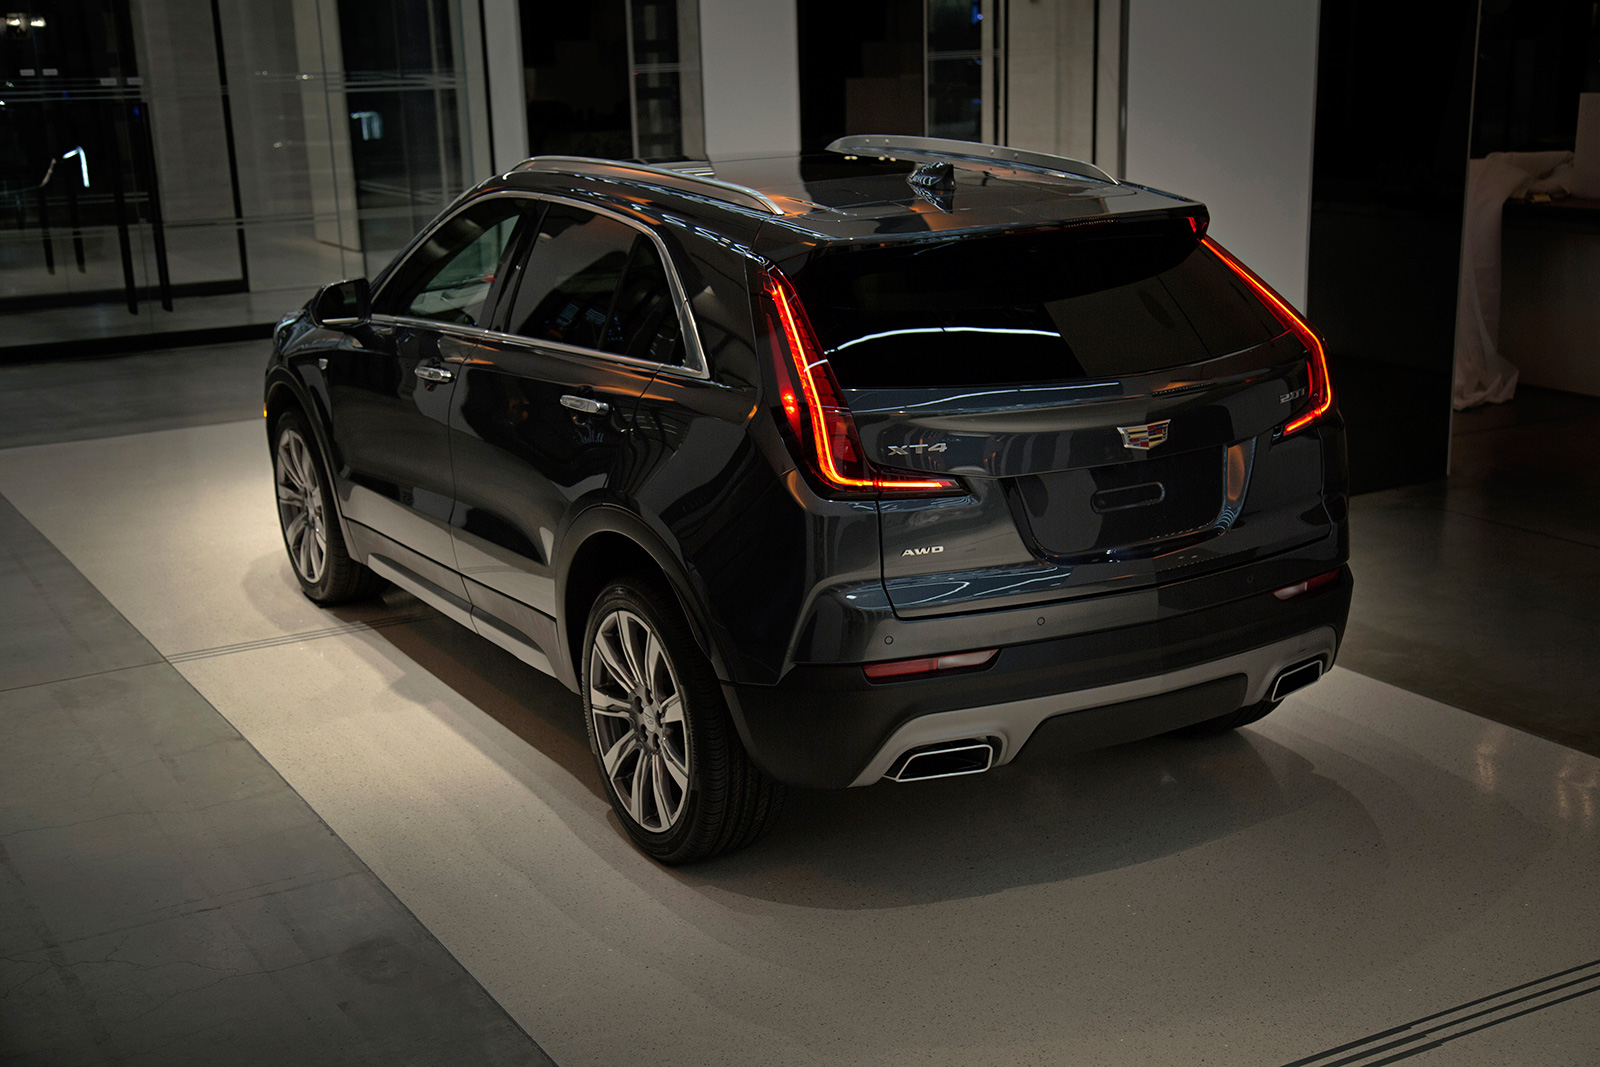 new news s for cadillac h what whats